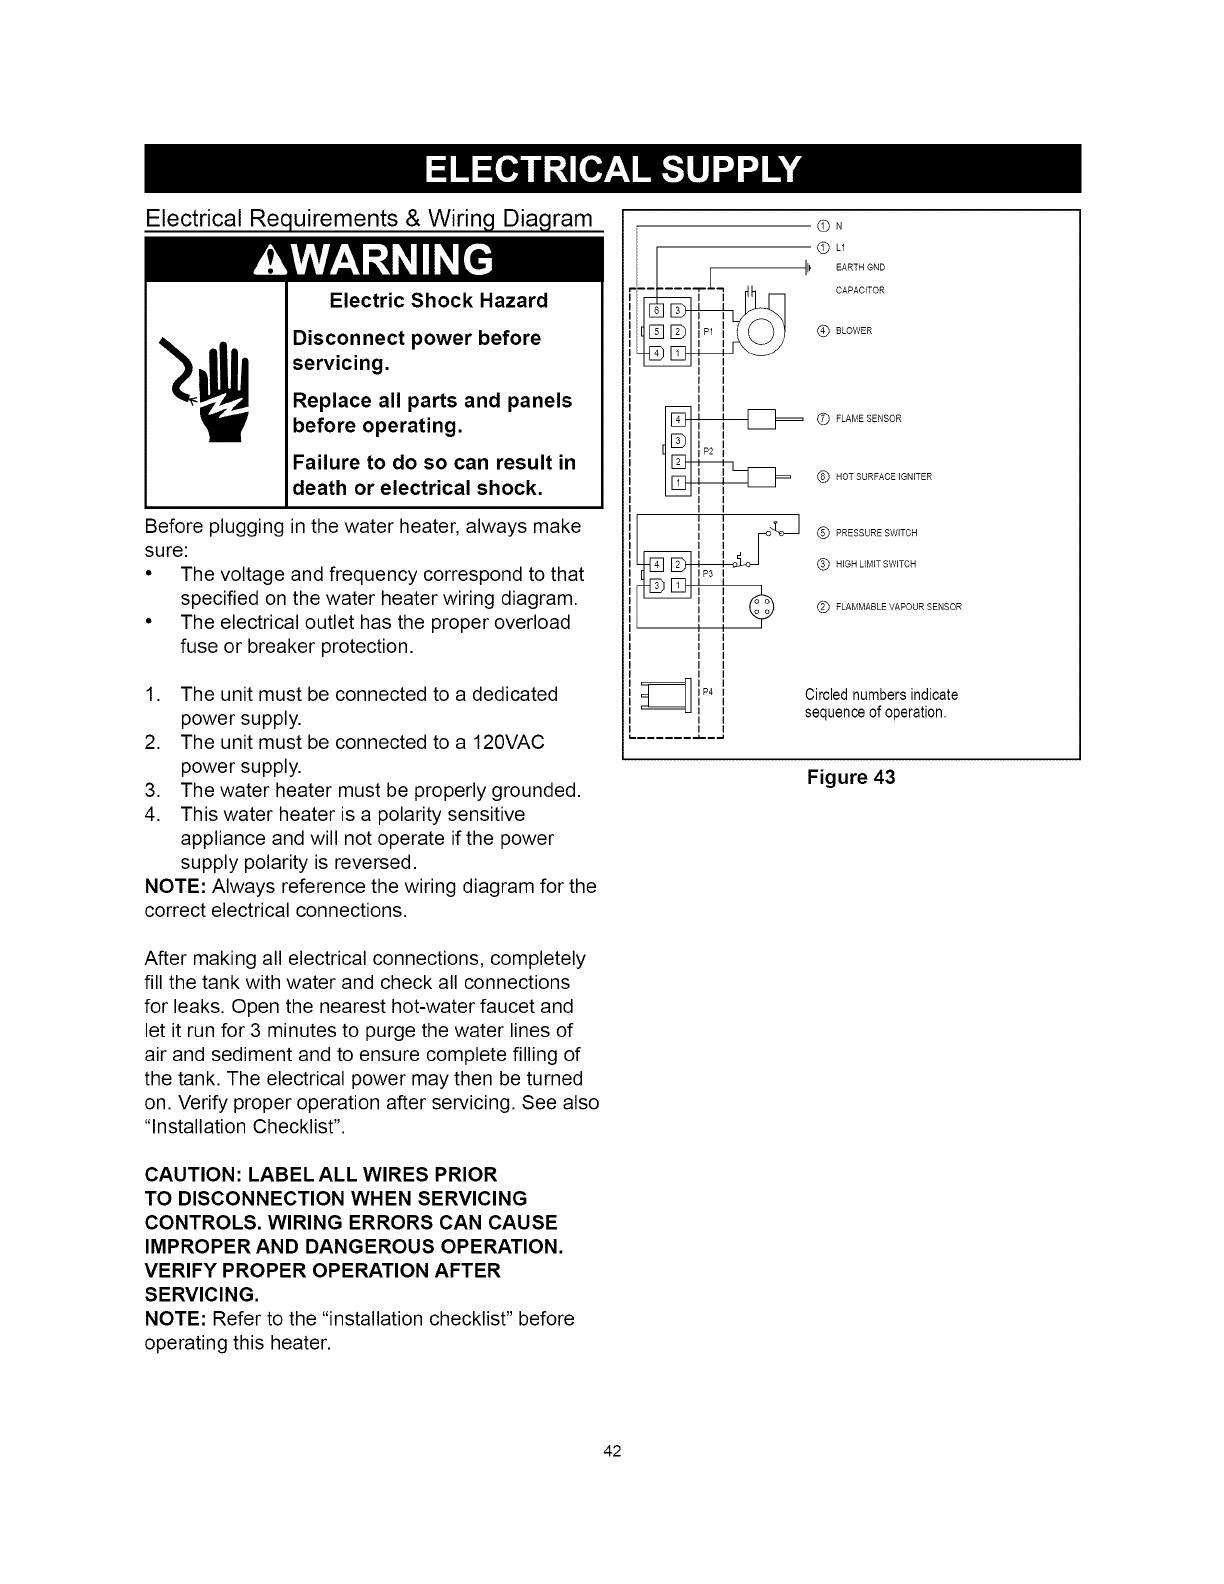 Electric Hot Water Heater Wiring Diagram On Power Cord Kenmore 153331350 User Manual Manuals And Guides 1304032l Electrical Requirements